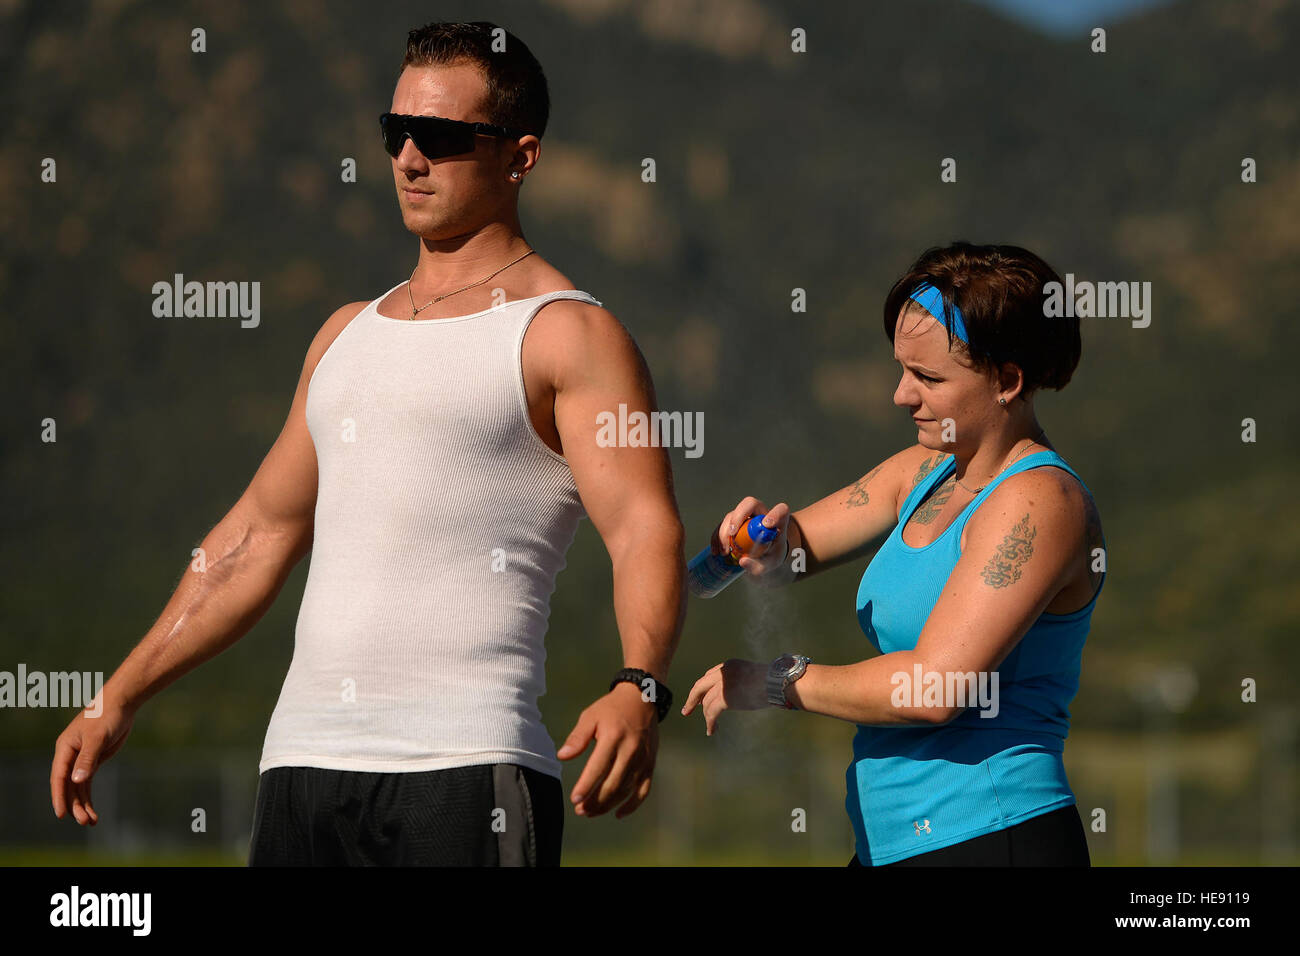 Melissa Coduti and Gideon Connelly, Wounded Warrior athletes, prepare for track and field practice Aug. 3, 2014, - Stock Image